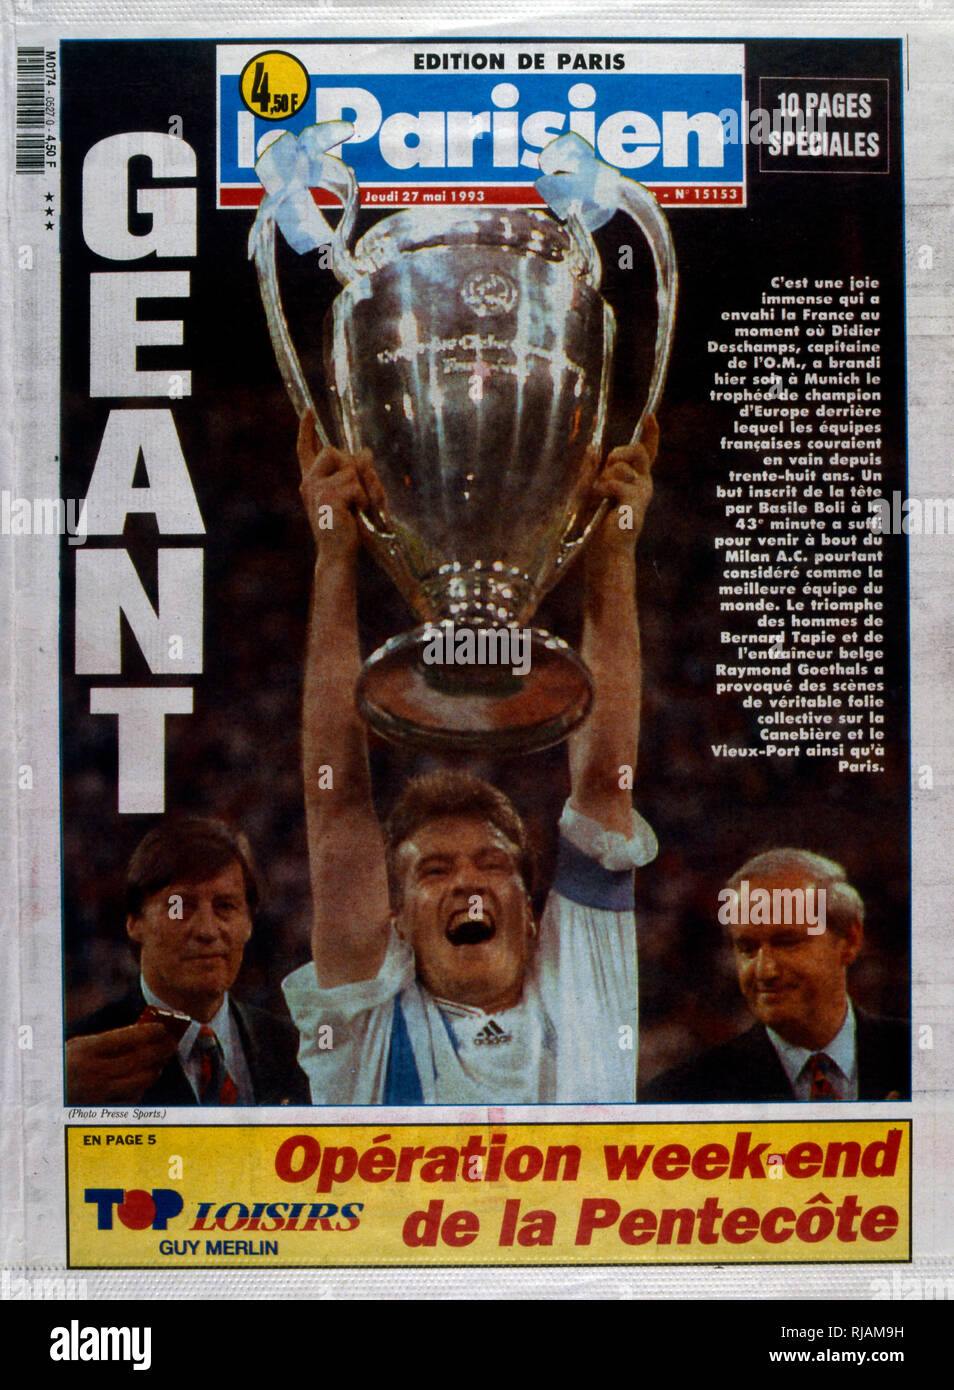 French publication 'Le Parisien' reporting the Marseilles Football club winning the UEFA Champions League in 1993. The highlight of the Marseilles football club's history was winning the new format UEFA Champions League in 1993. Basile Boli scored the only goal against Italy's Milan in the final held in Munich's Olympic Stadium. This triumph, however, was followed by a decade of decline. In 1994, due to financial irregularities and a match fixing scandal involving then president Bernard Tapie - Stock Image